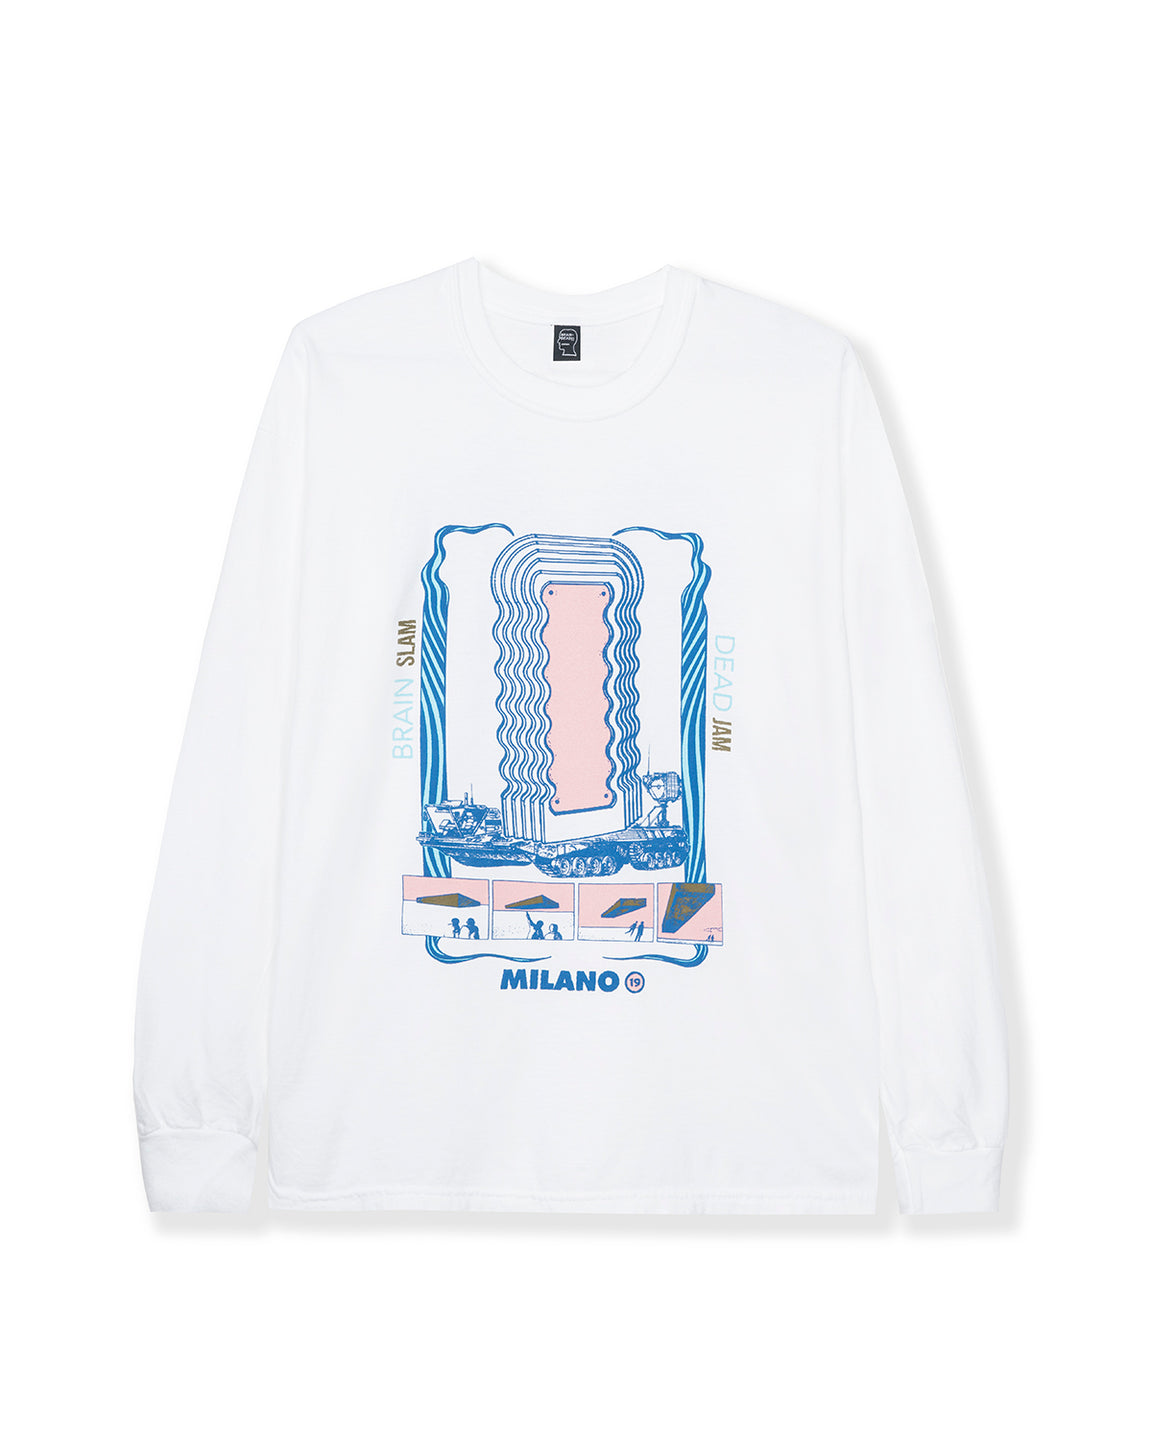 Slam Jam Pilot Long Sleeve - White